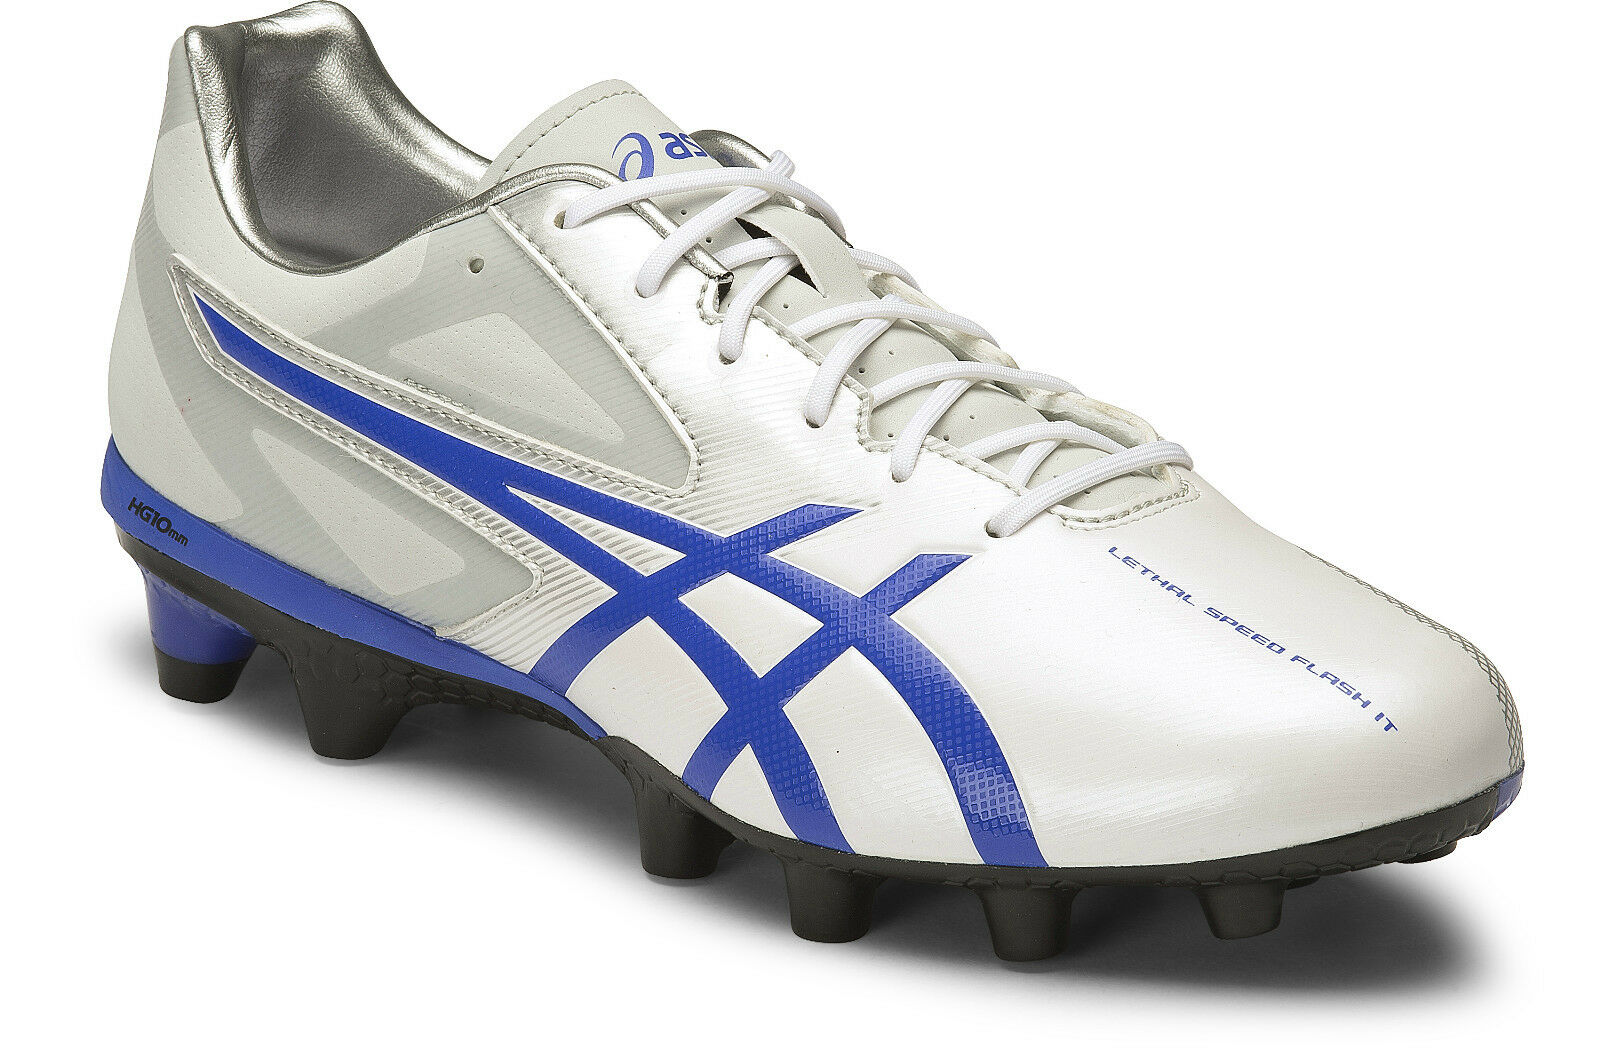 Asics Lethal Speed Flash IT Pour des hommes Football chaussures (0148) + Libre Aus Delivery